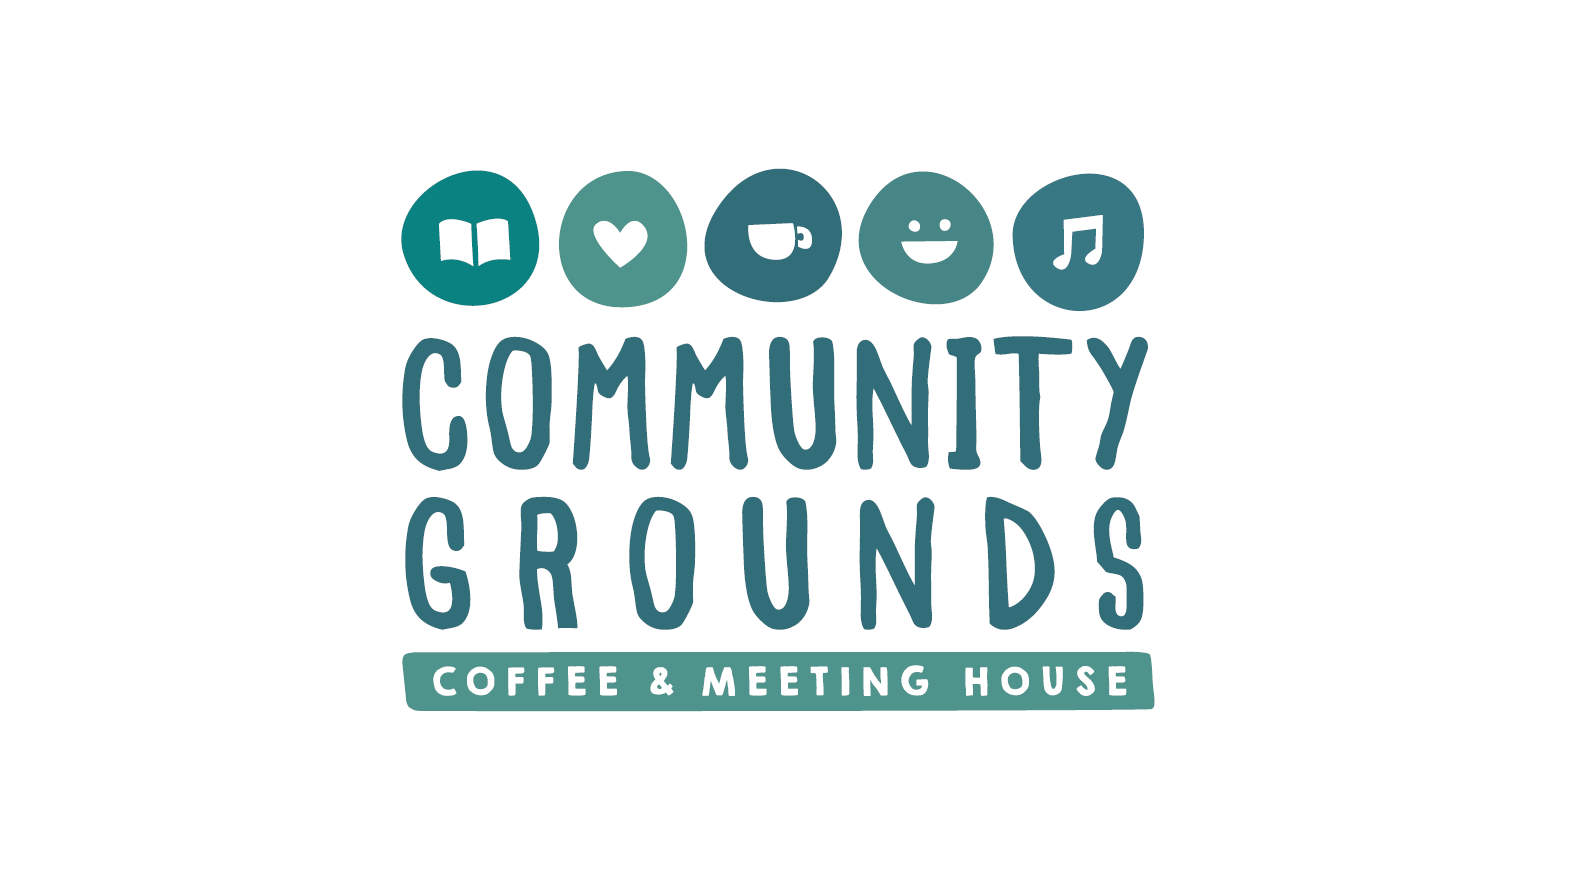 Community Grounds logo